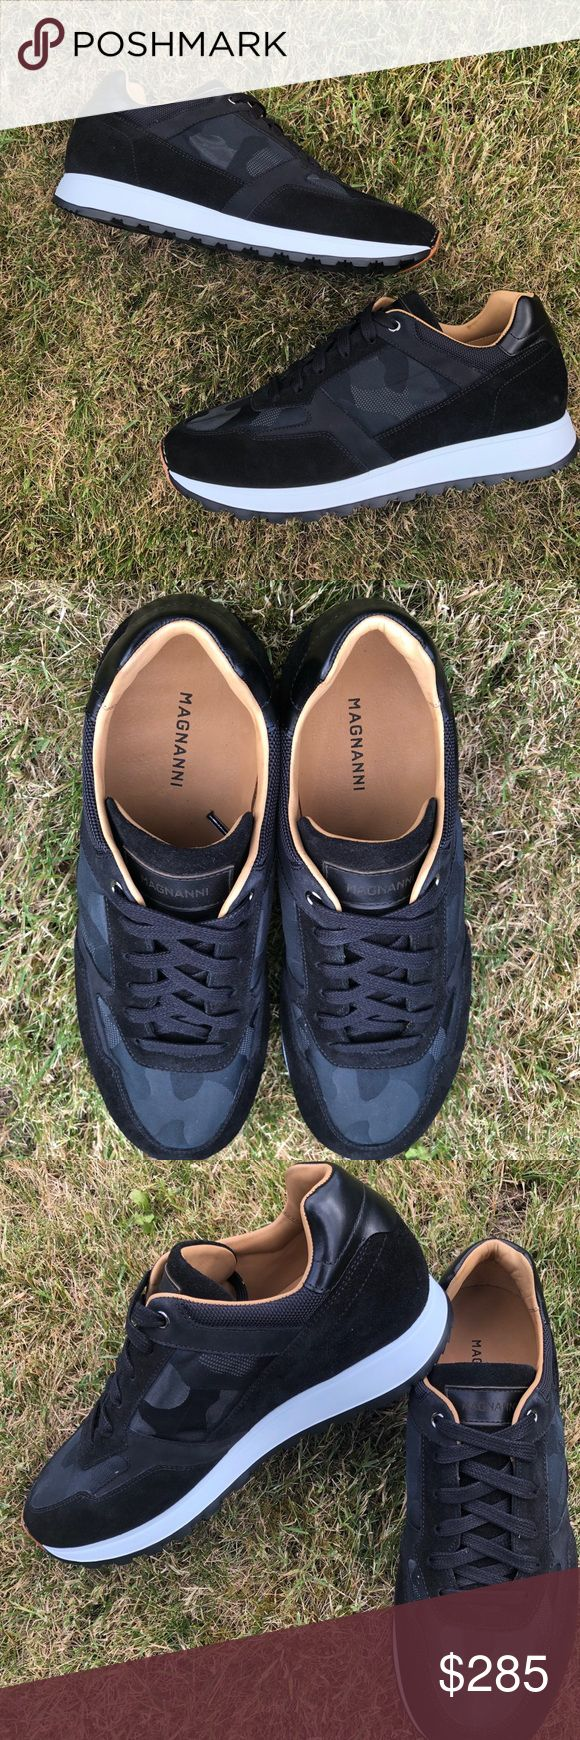 Magnanni Camo Sneaker- Men size 8 Sporty, vintage inspired sneakers- must have! ...